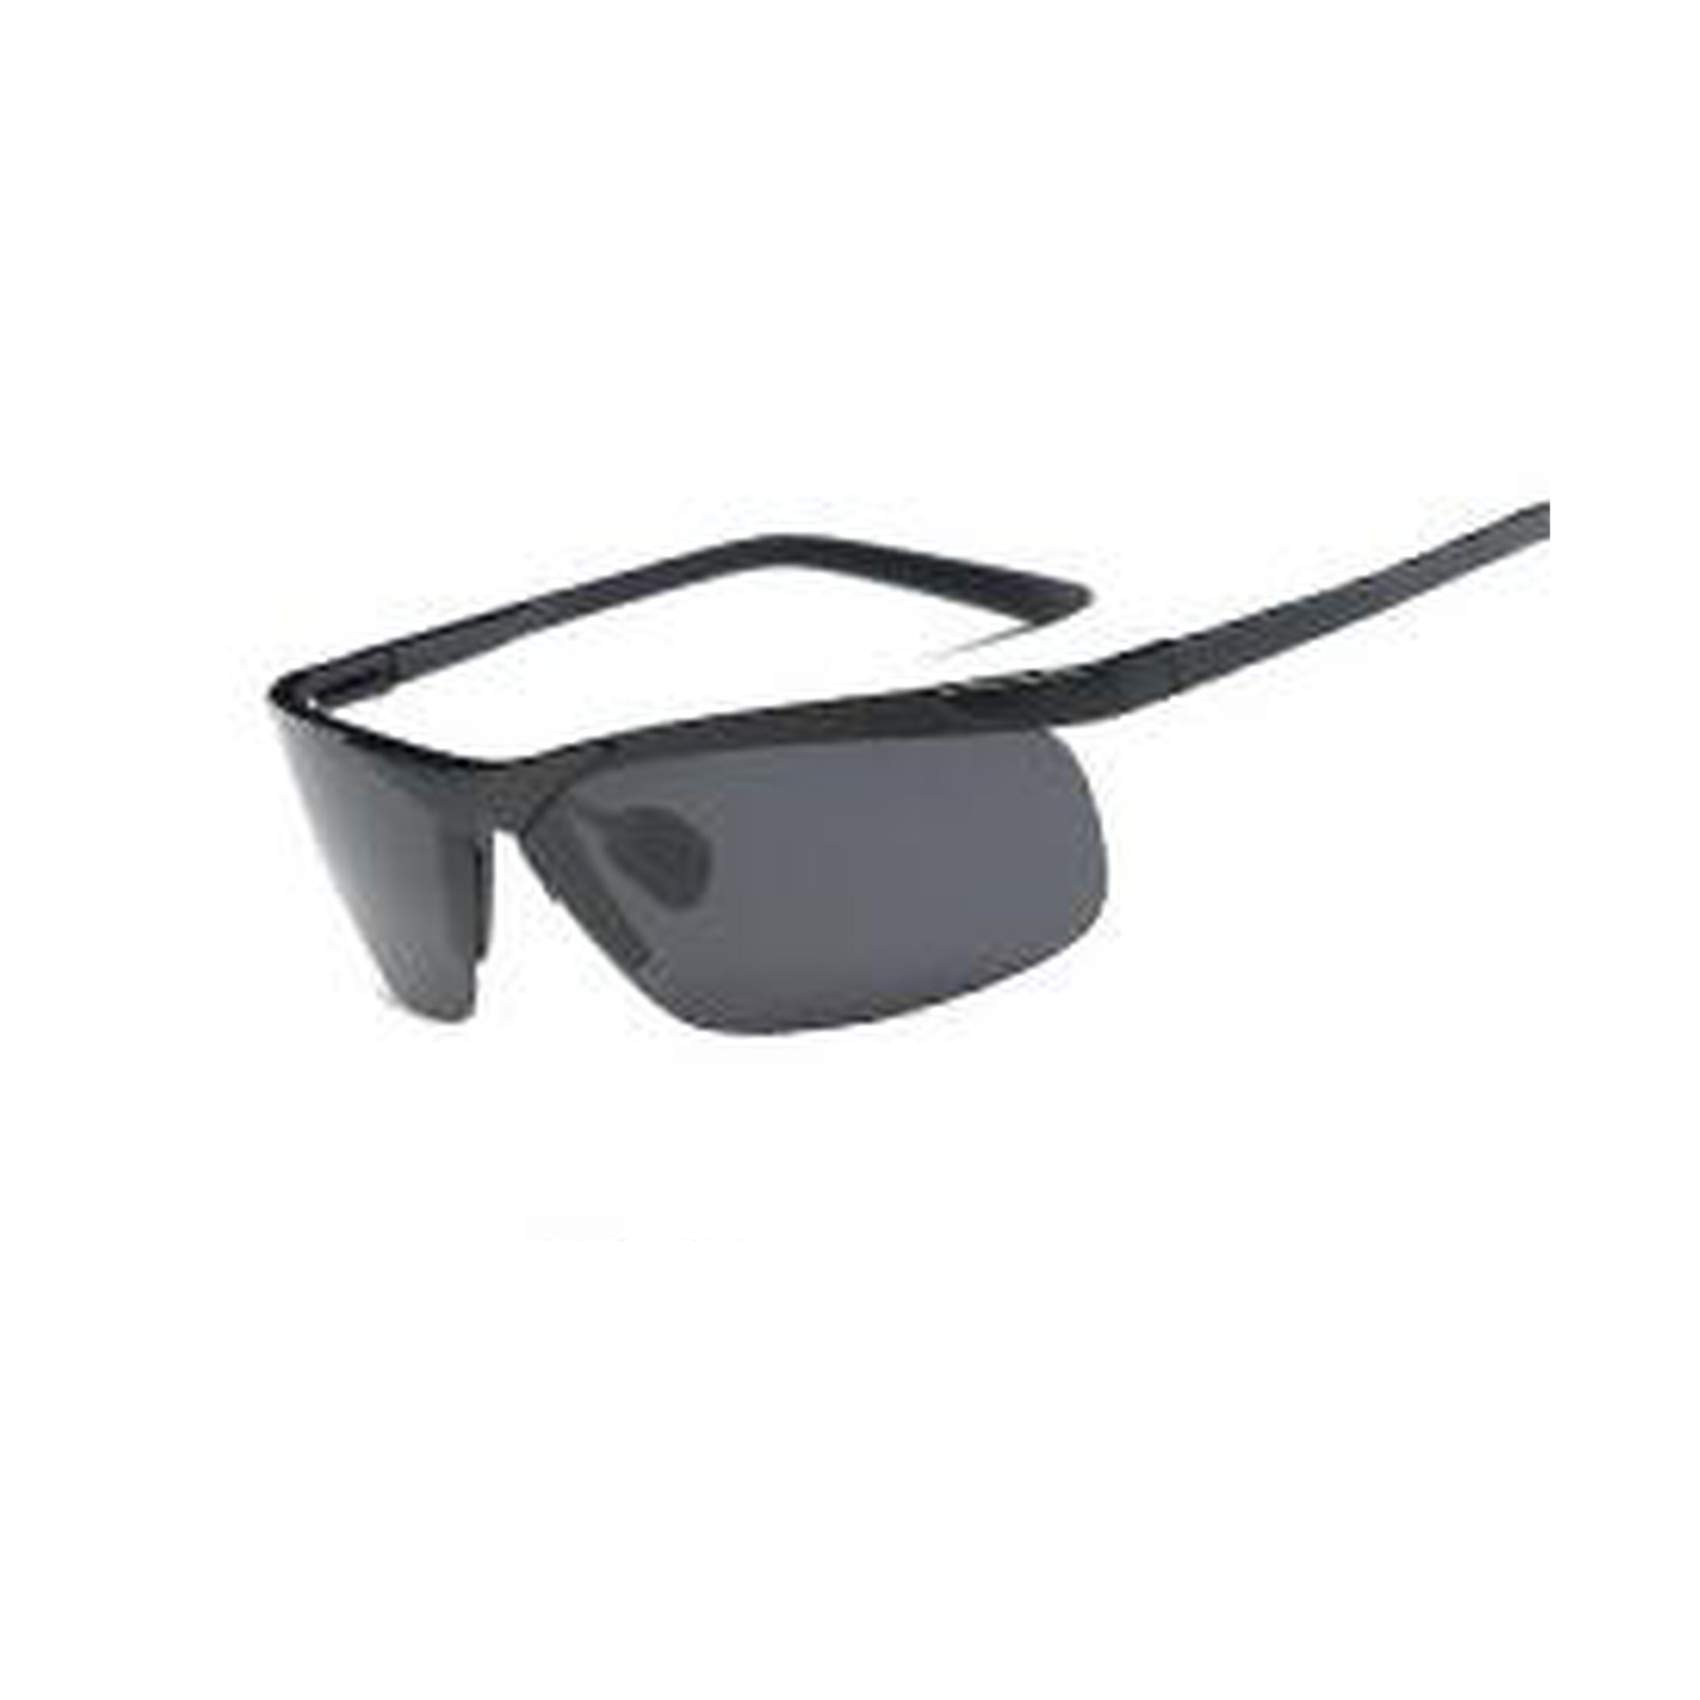 Outdoor Sports Imitation Aluminum Magnesium New Sunglasses Sport Riding Polarized Glasses Cycling Eyewear Multi Color,A